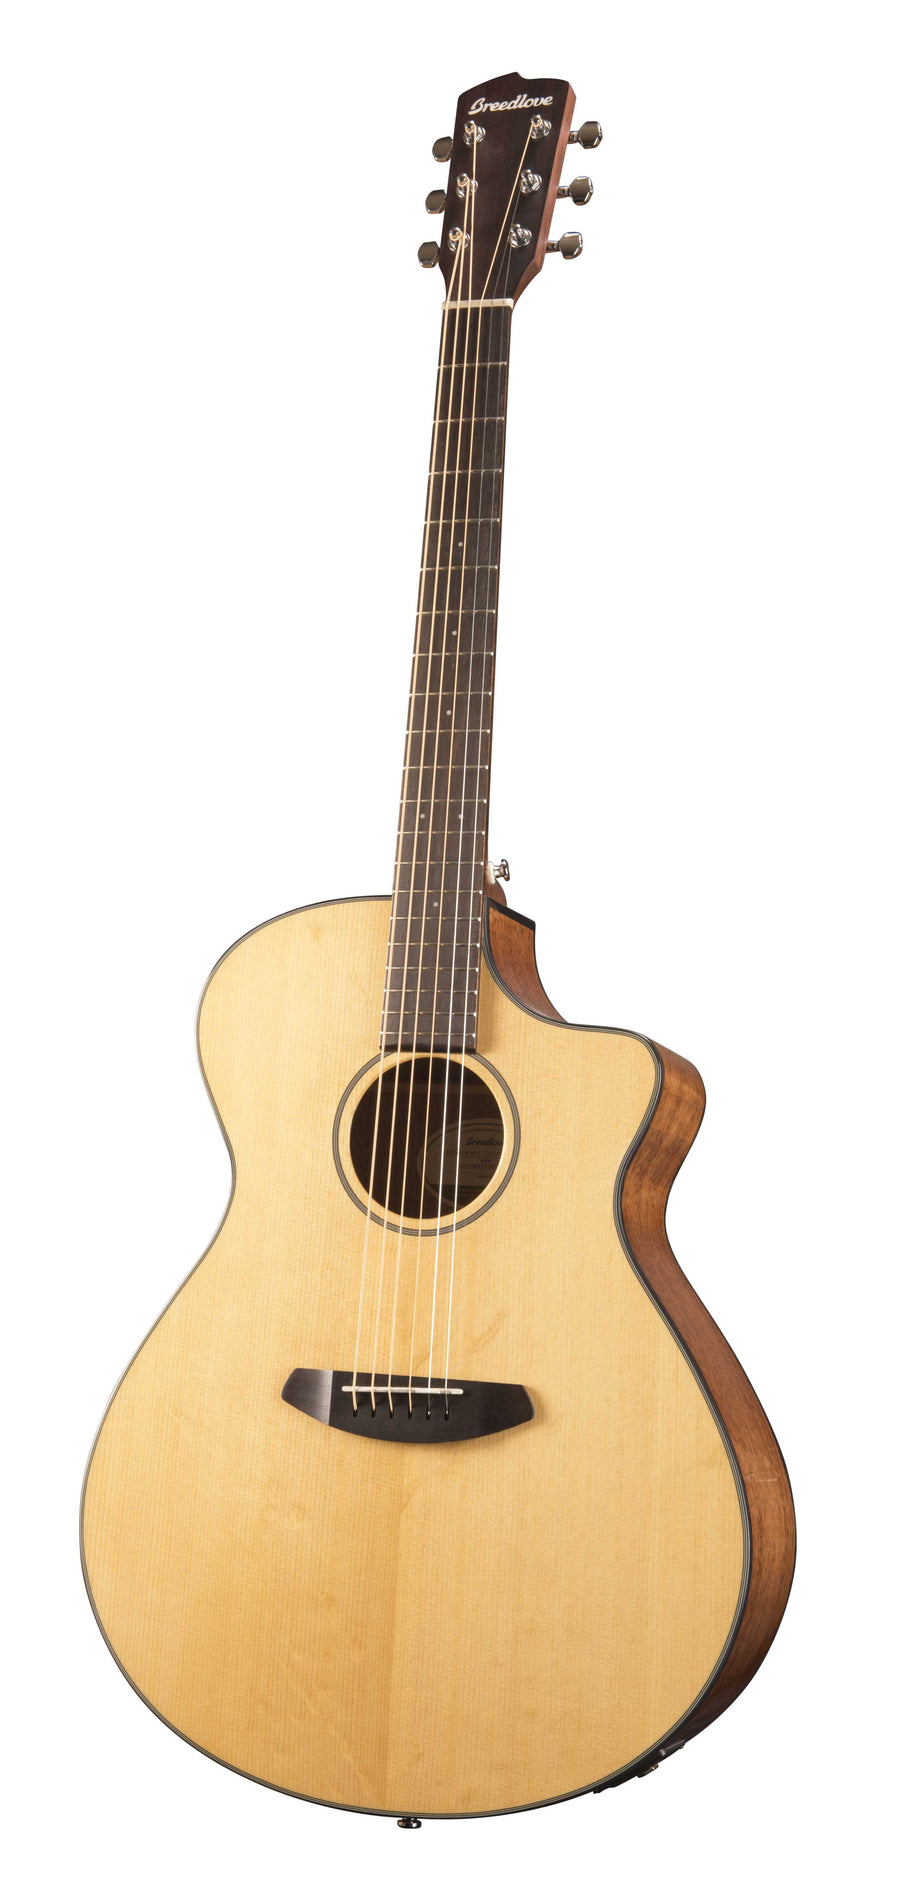 Breedlove Discovery Concerto CE Acoustic Electric Guitar